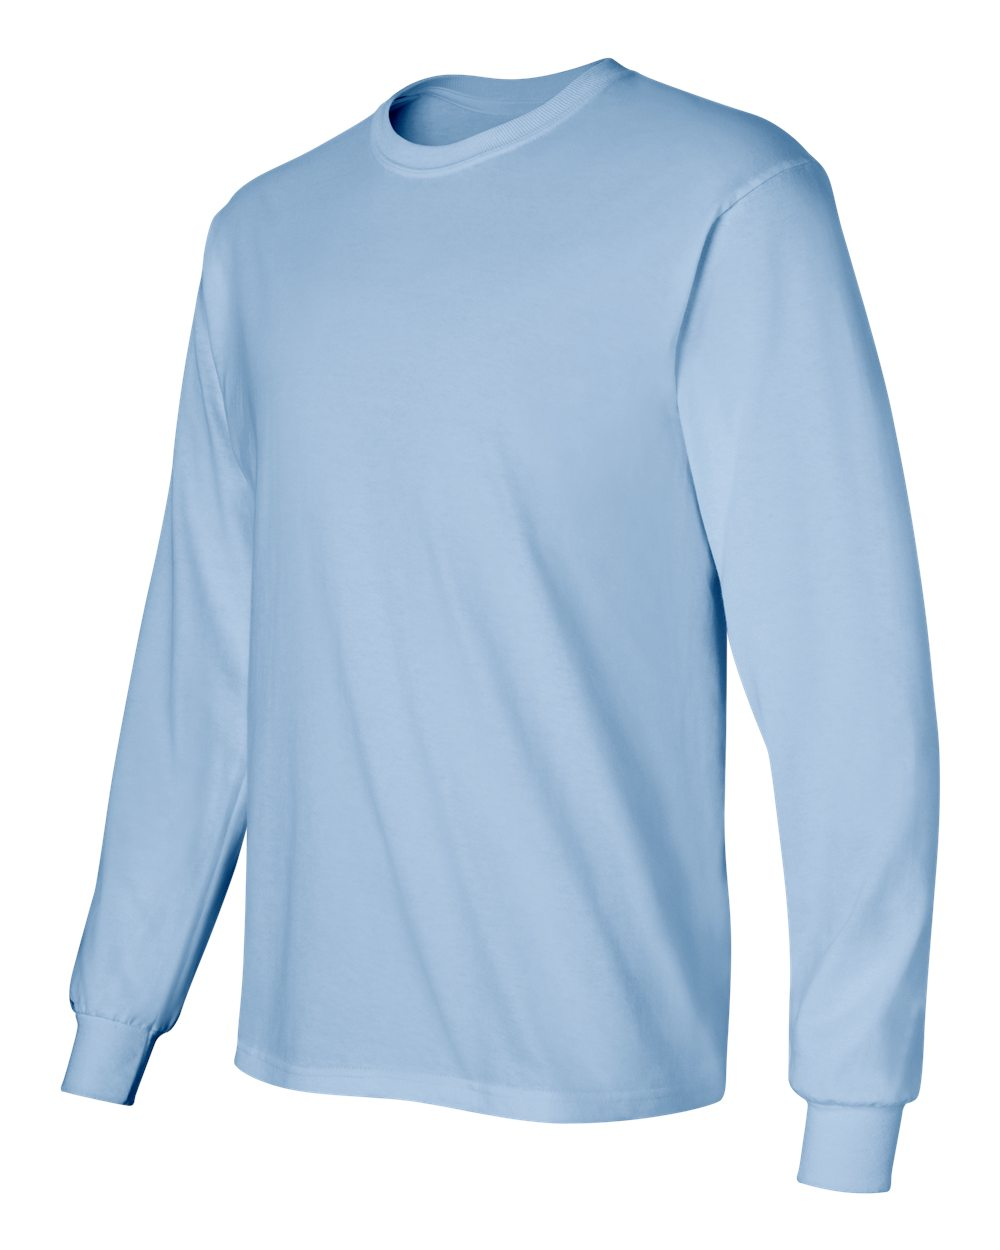 Gildan-Men-039-s-Ultra-Cotton-6-oz-Long-Sleeve-T-Shirt-G240-S-5XL thumbnail 47